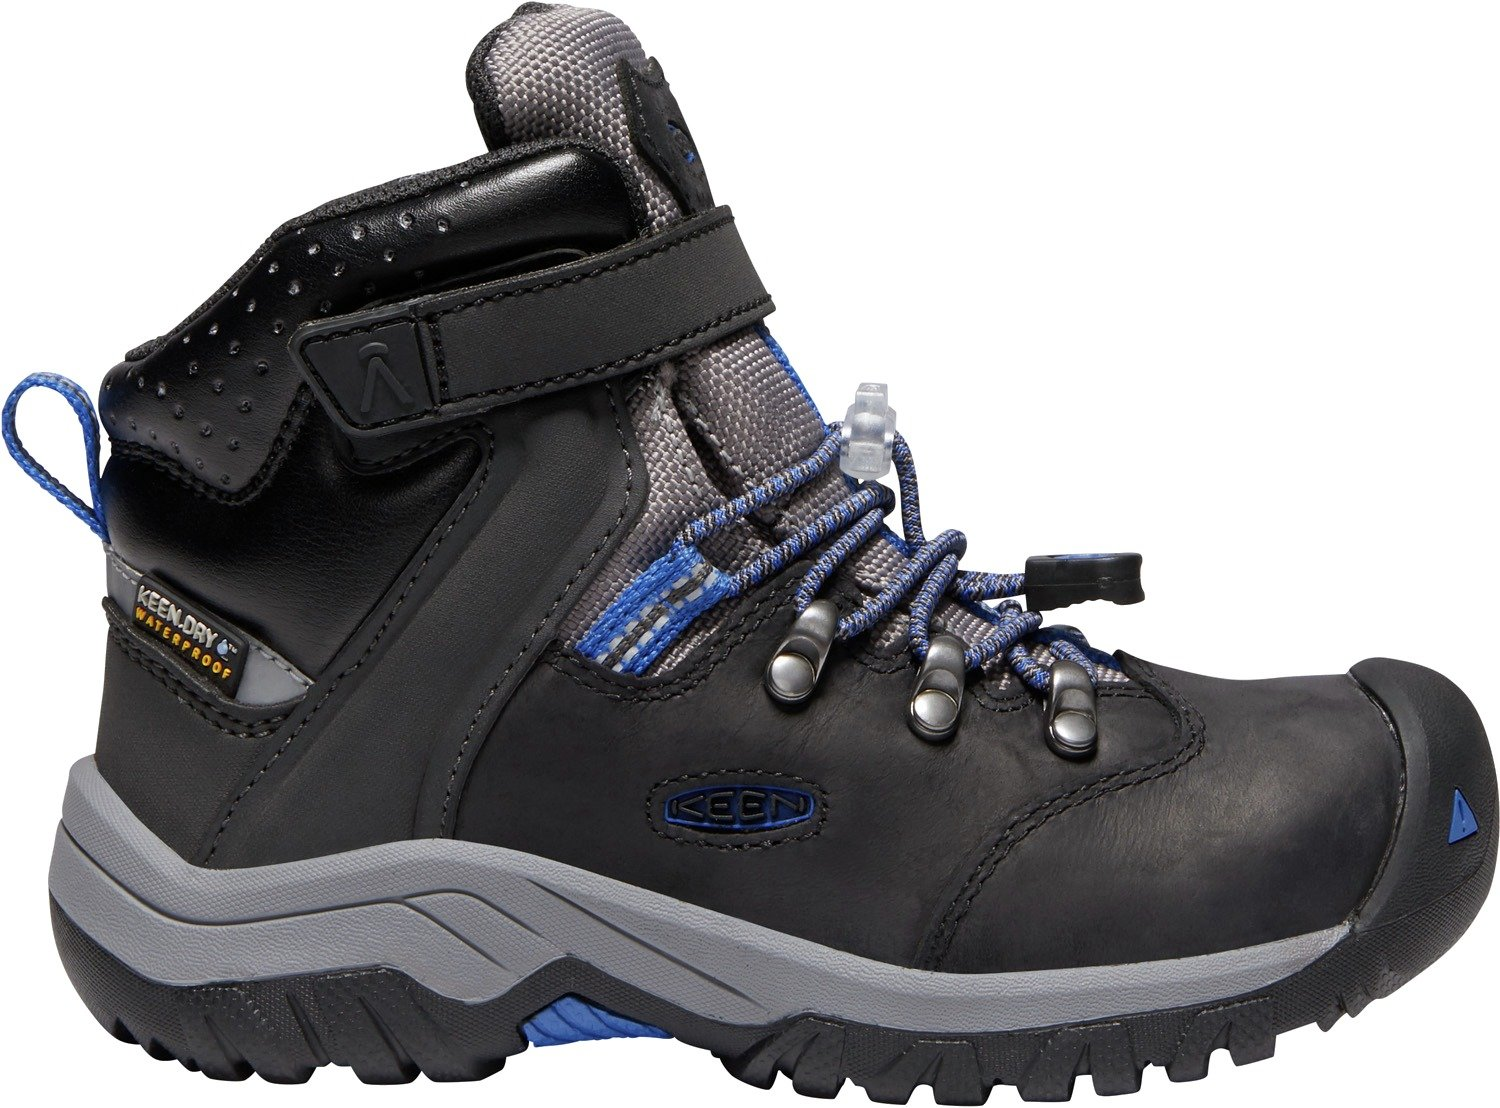 KEEN - Kid's Torino II Mid Waterproof Winter Boots, Black/Baleine Blue, 8 M US Big Kid